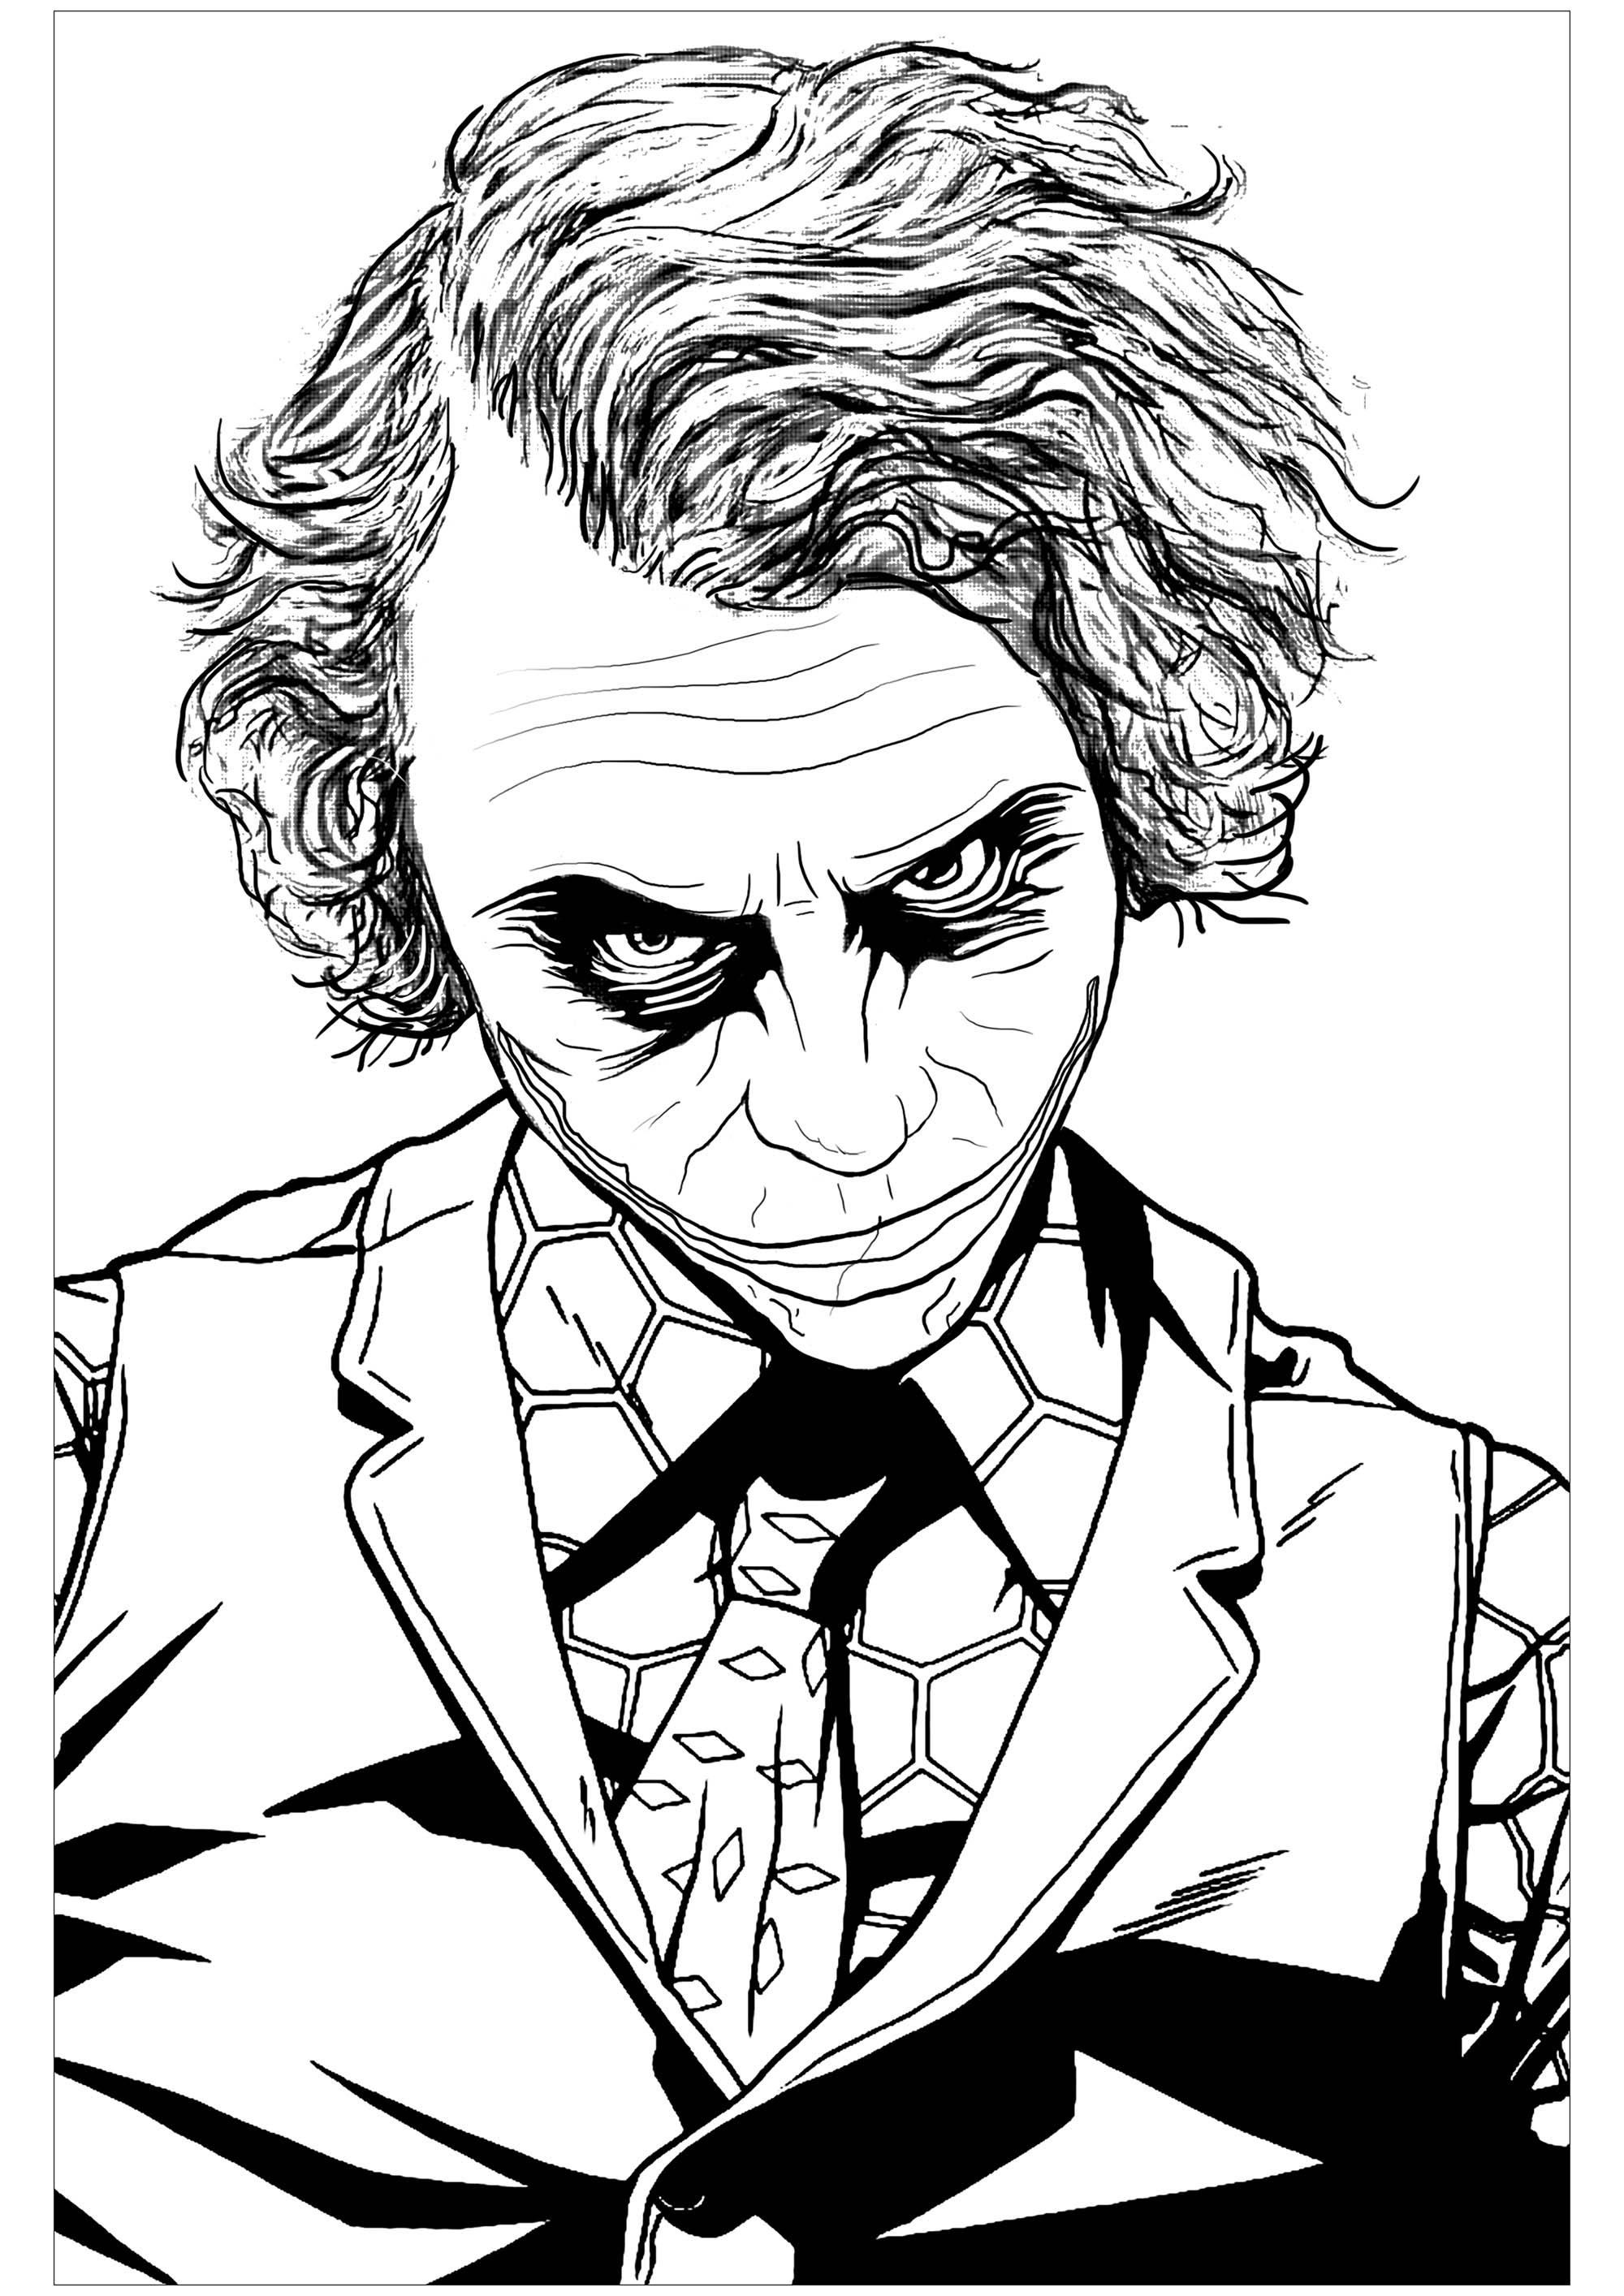 Joker Coloring Pages : joker, coloring, pages, Joker, Heath, Ledger, Movies, Adult, Coloring, Pages